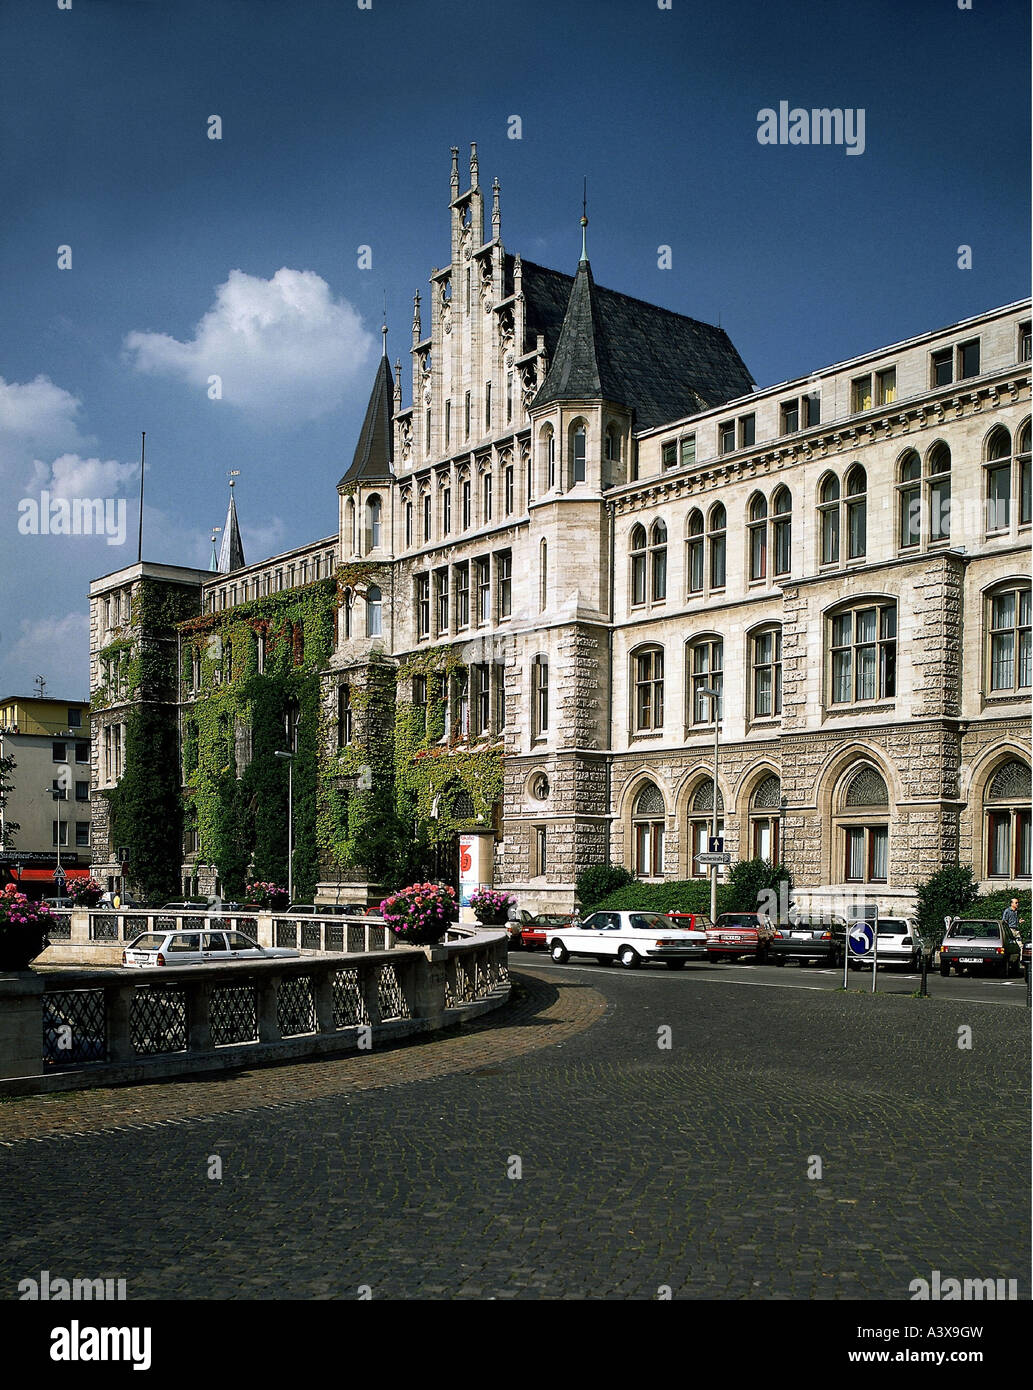 geography / travel, Germany, Niedersachsen, Brunswick, buildings, architecture, Nord LB banking house, exterior - Stock Image